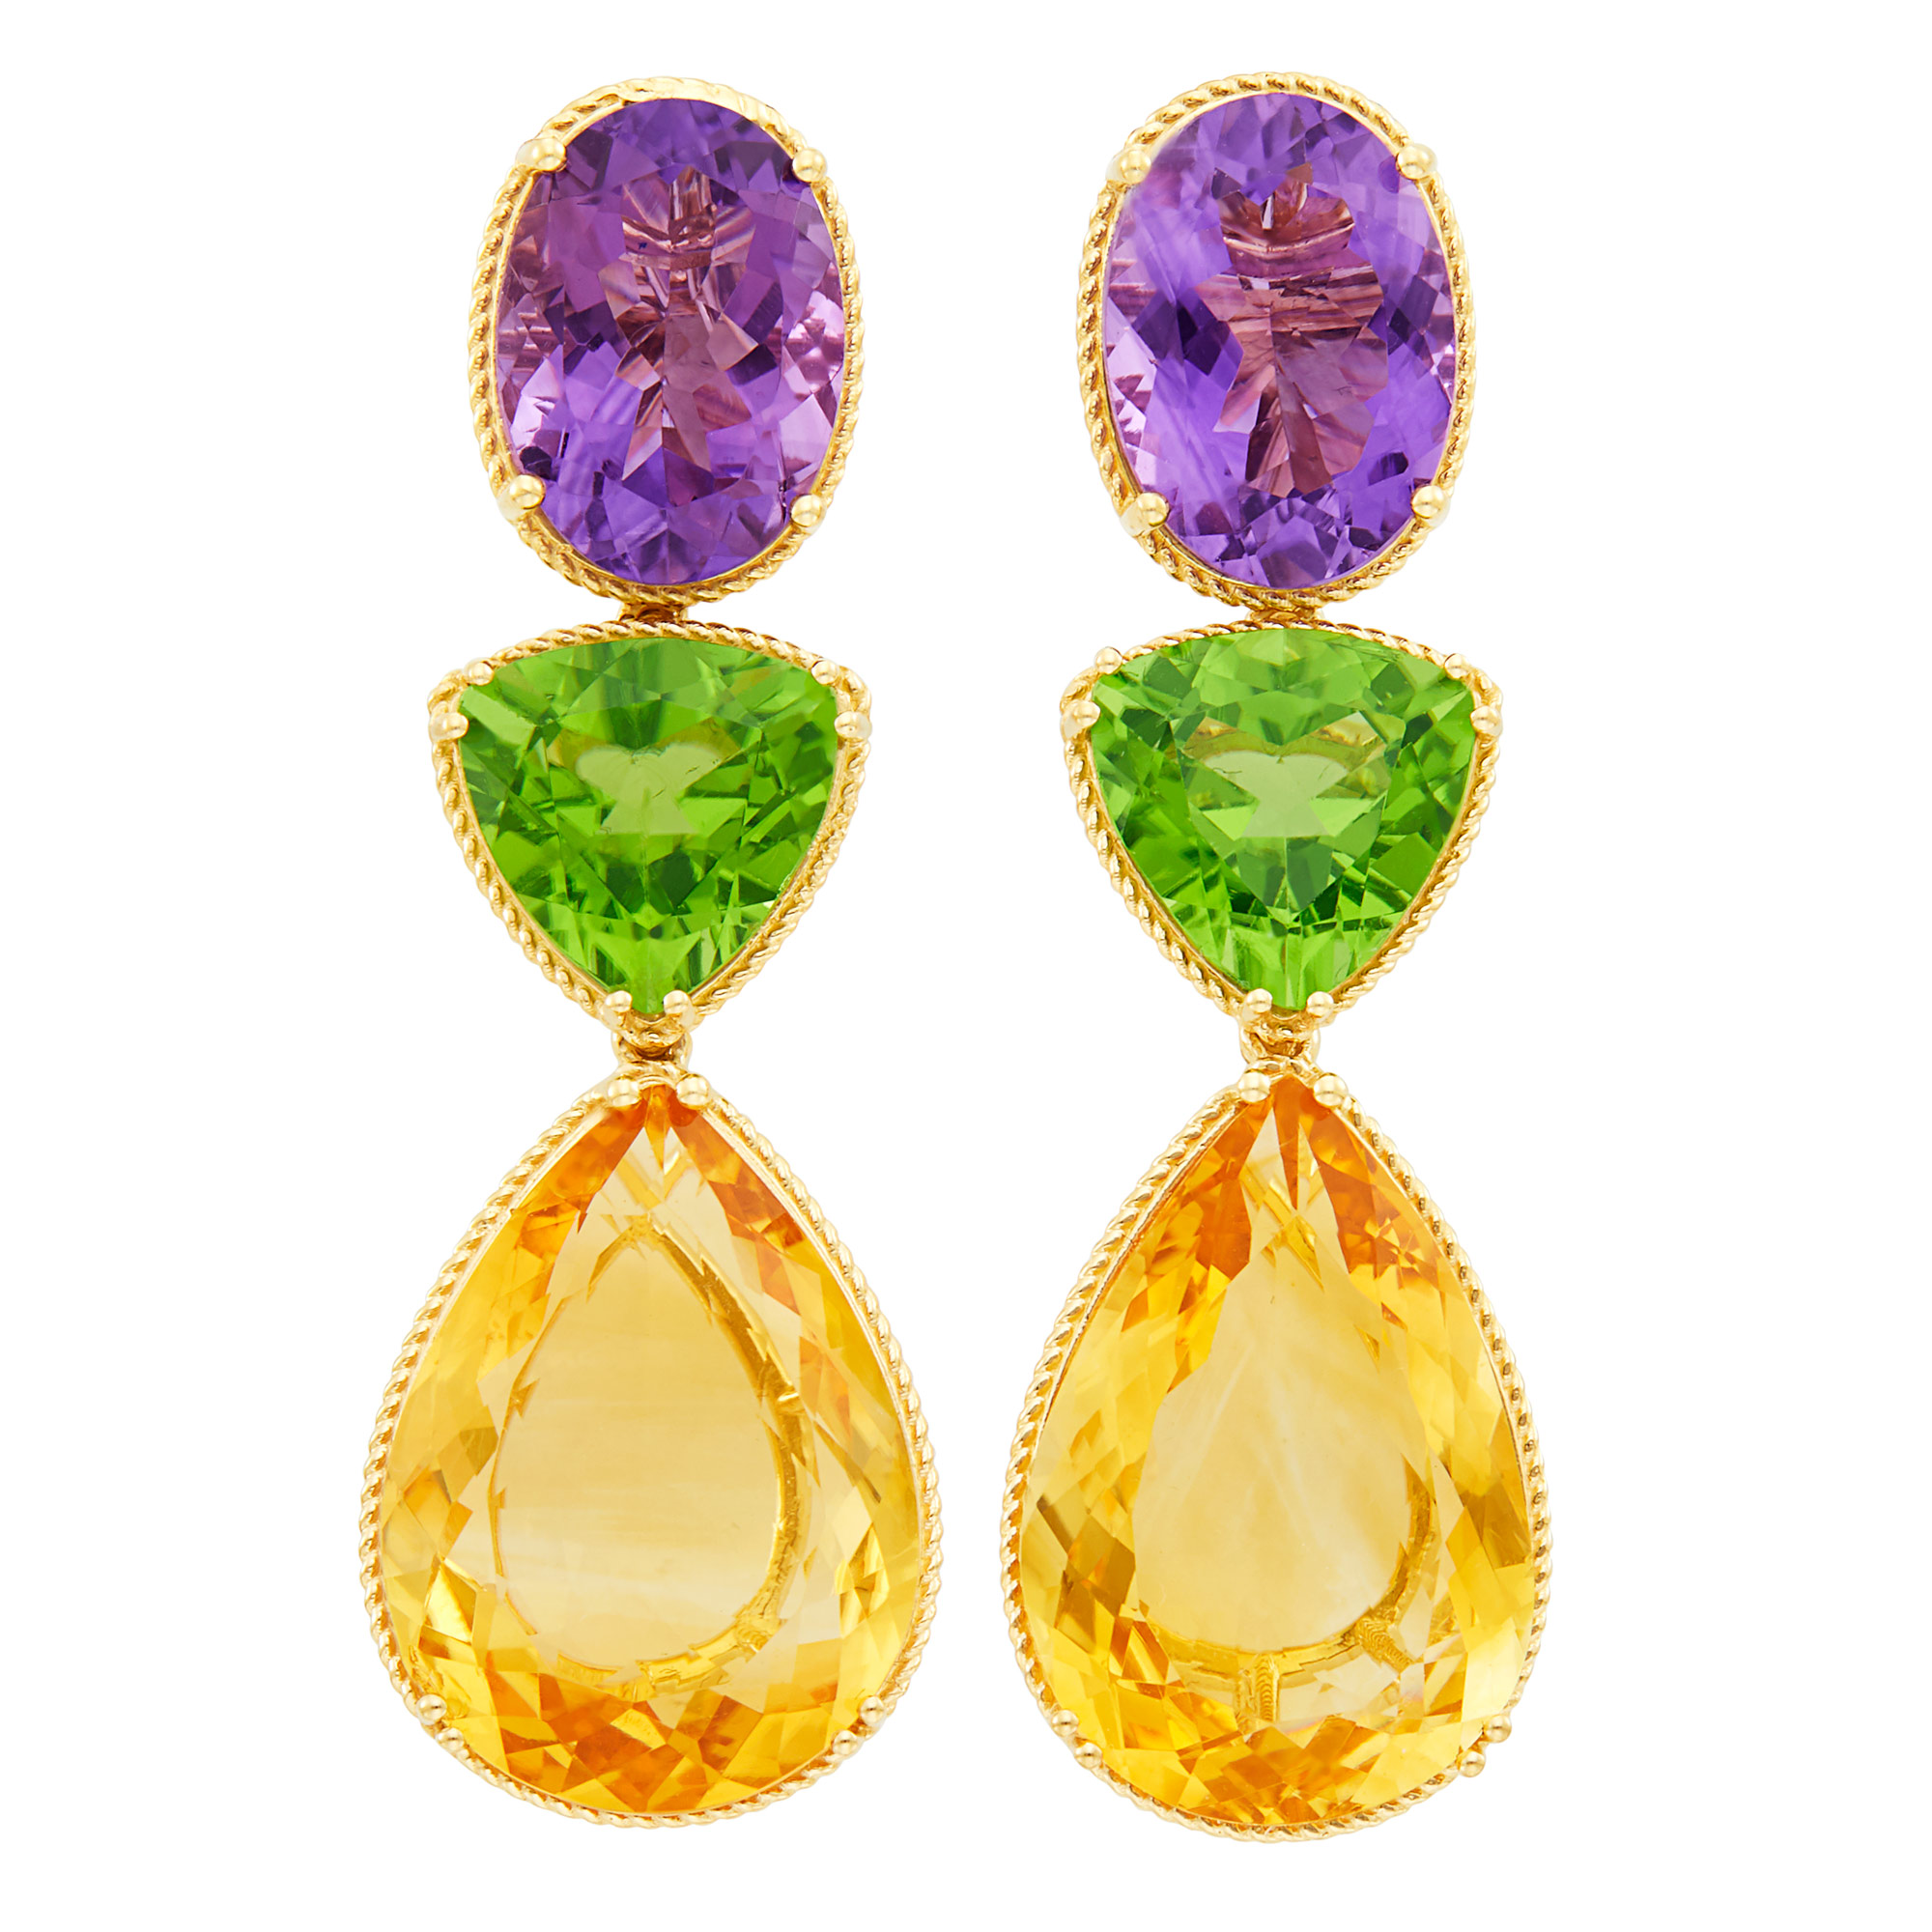 Lot image - Pair of Gold, Amethyst, Peridot and Citrine Pendant-Earclips